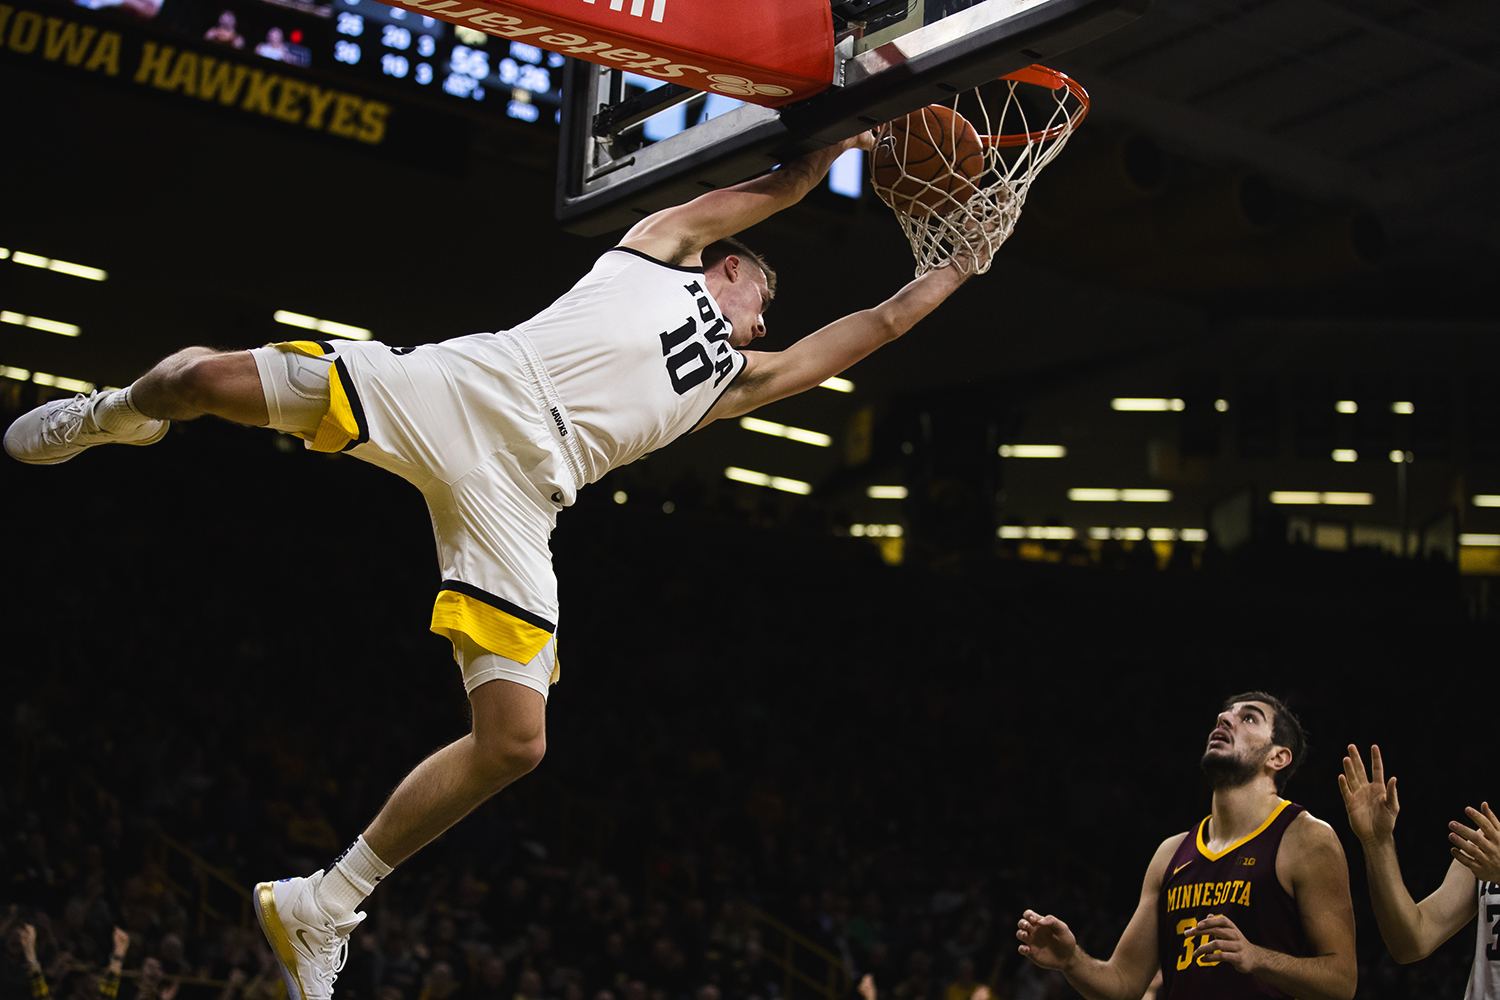 Iowa guard Joe Wieskamp dunks the ball during the men's basketball game against Minnesota at Carver-Hawkeye Arena on Monday, December 9, 2019. The Hawkeyes defeated the Gophers 72-52.